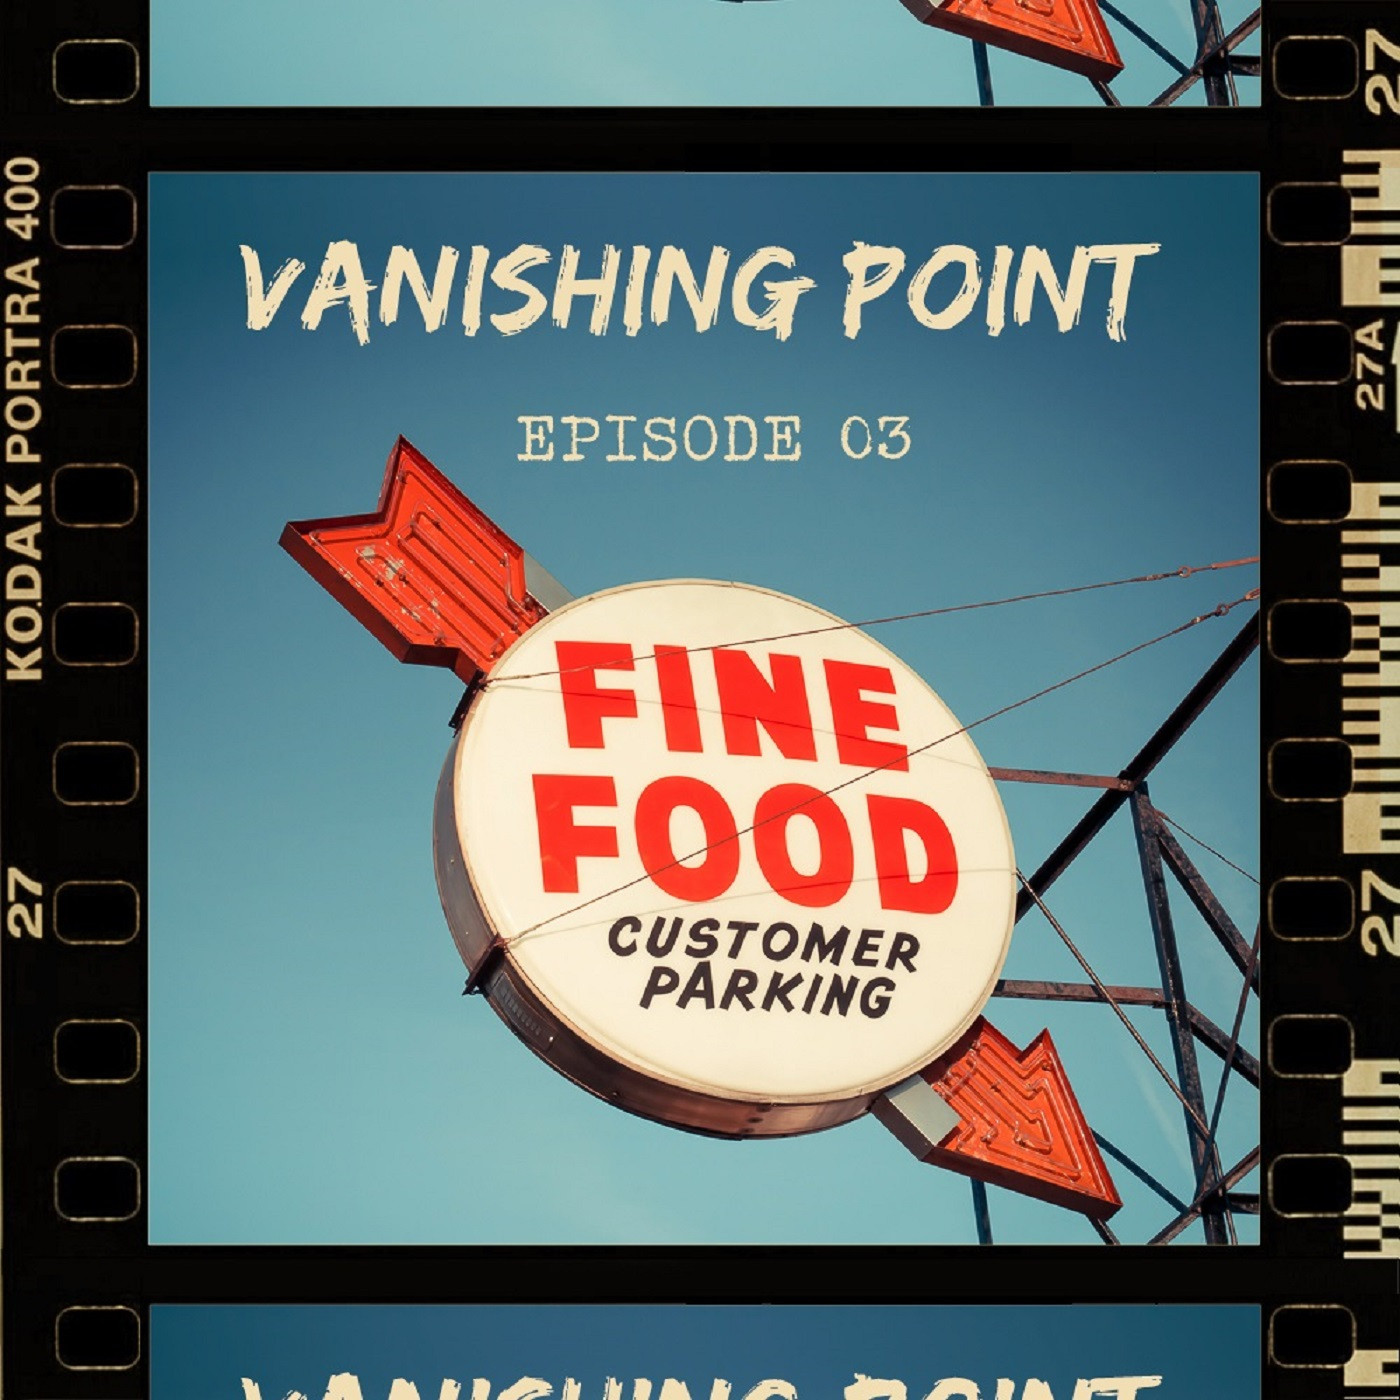 VANISHING POINT #3 - At the Diner